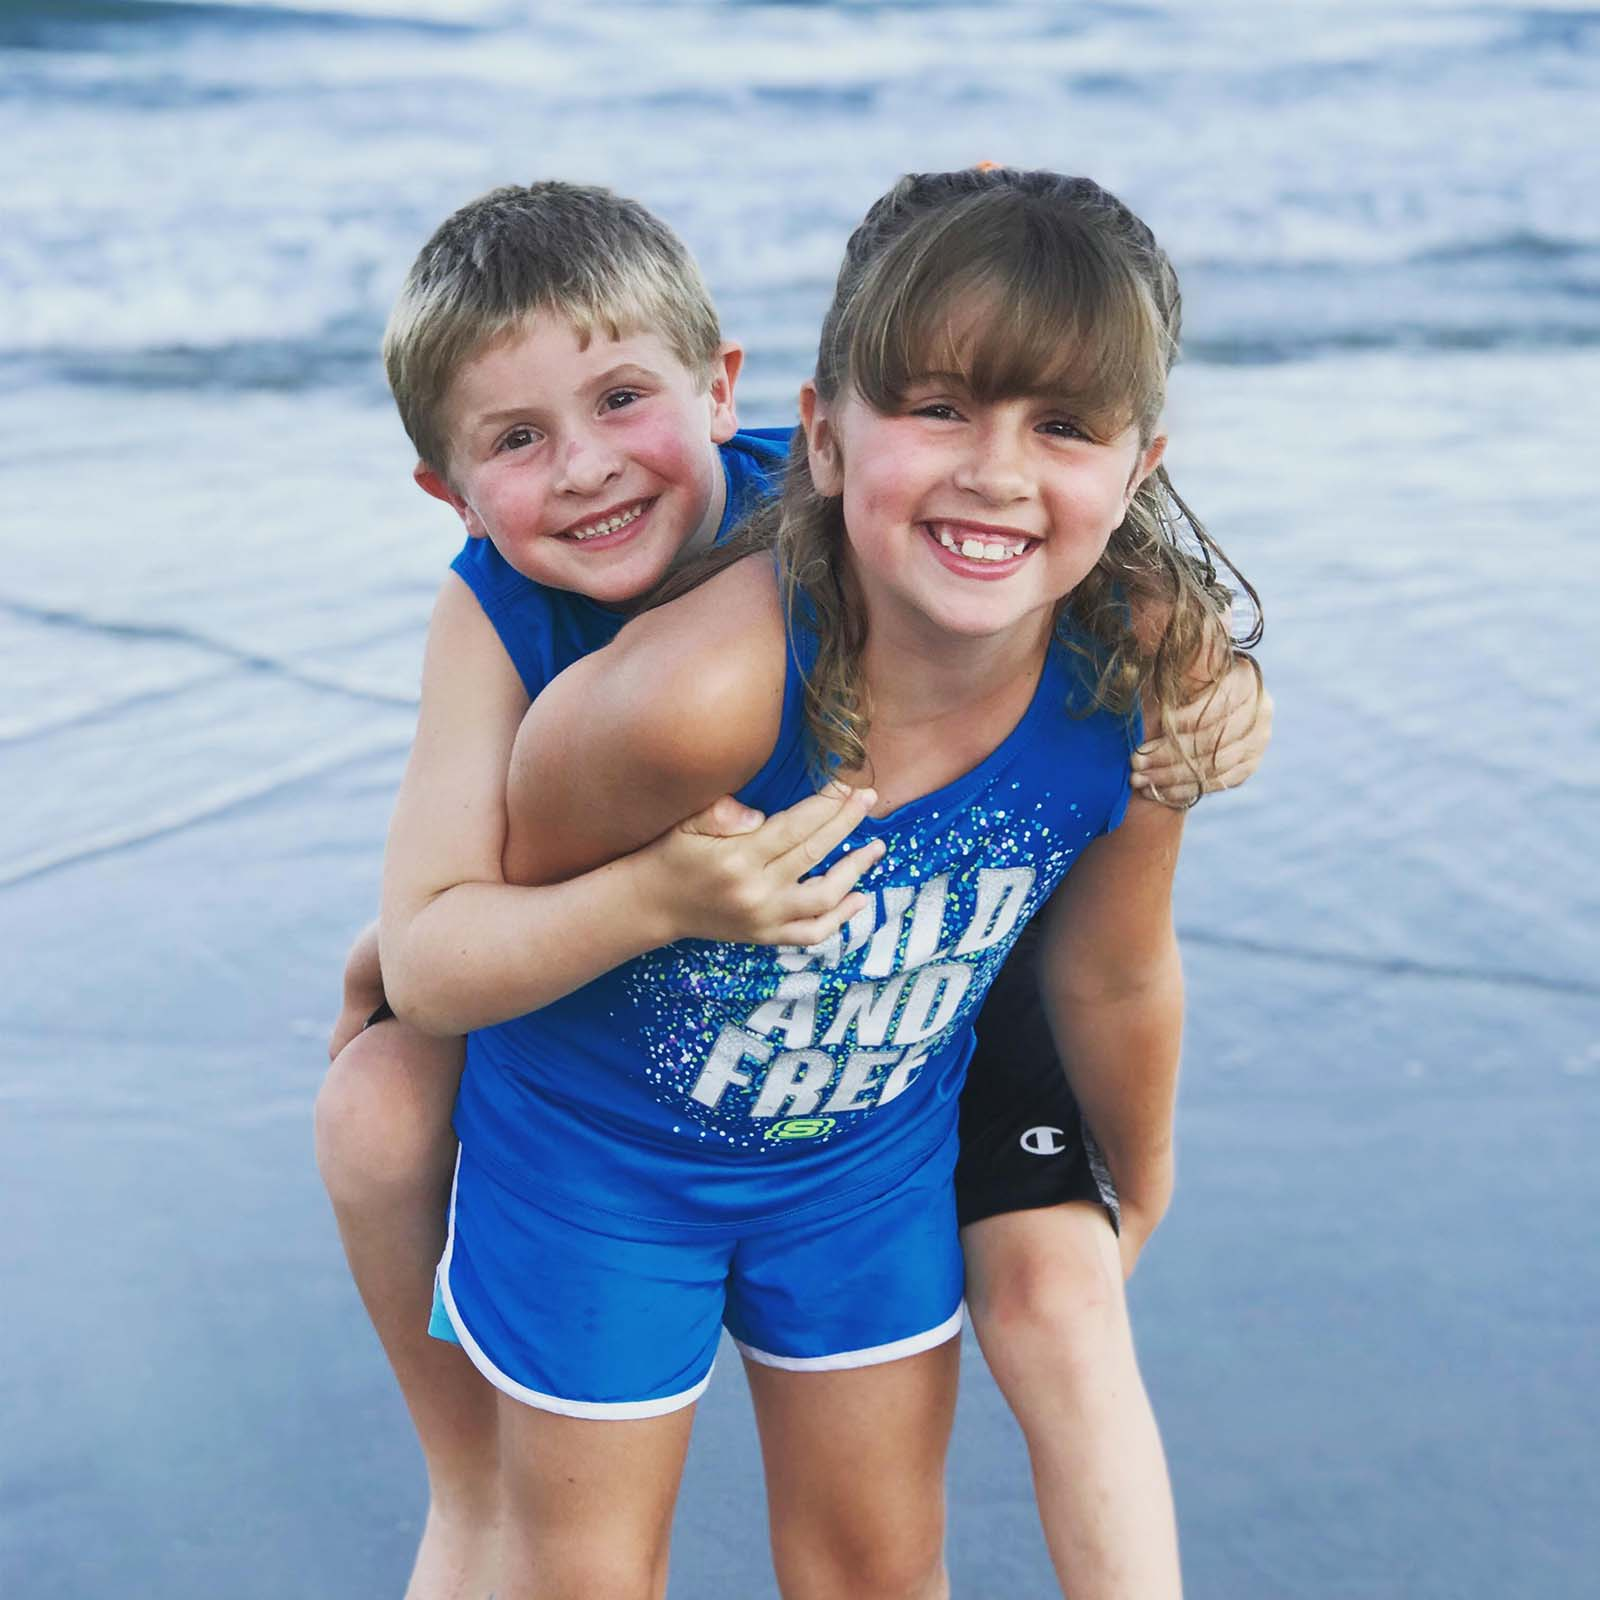 Girl with little brother on back in ocean